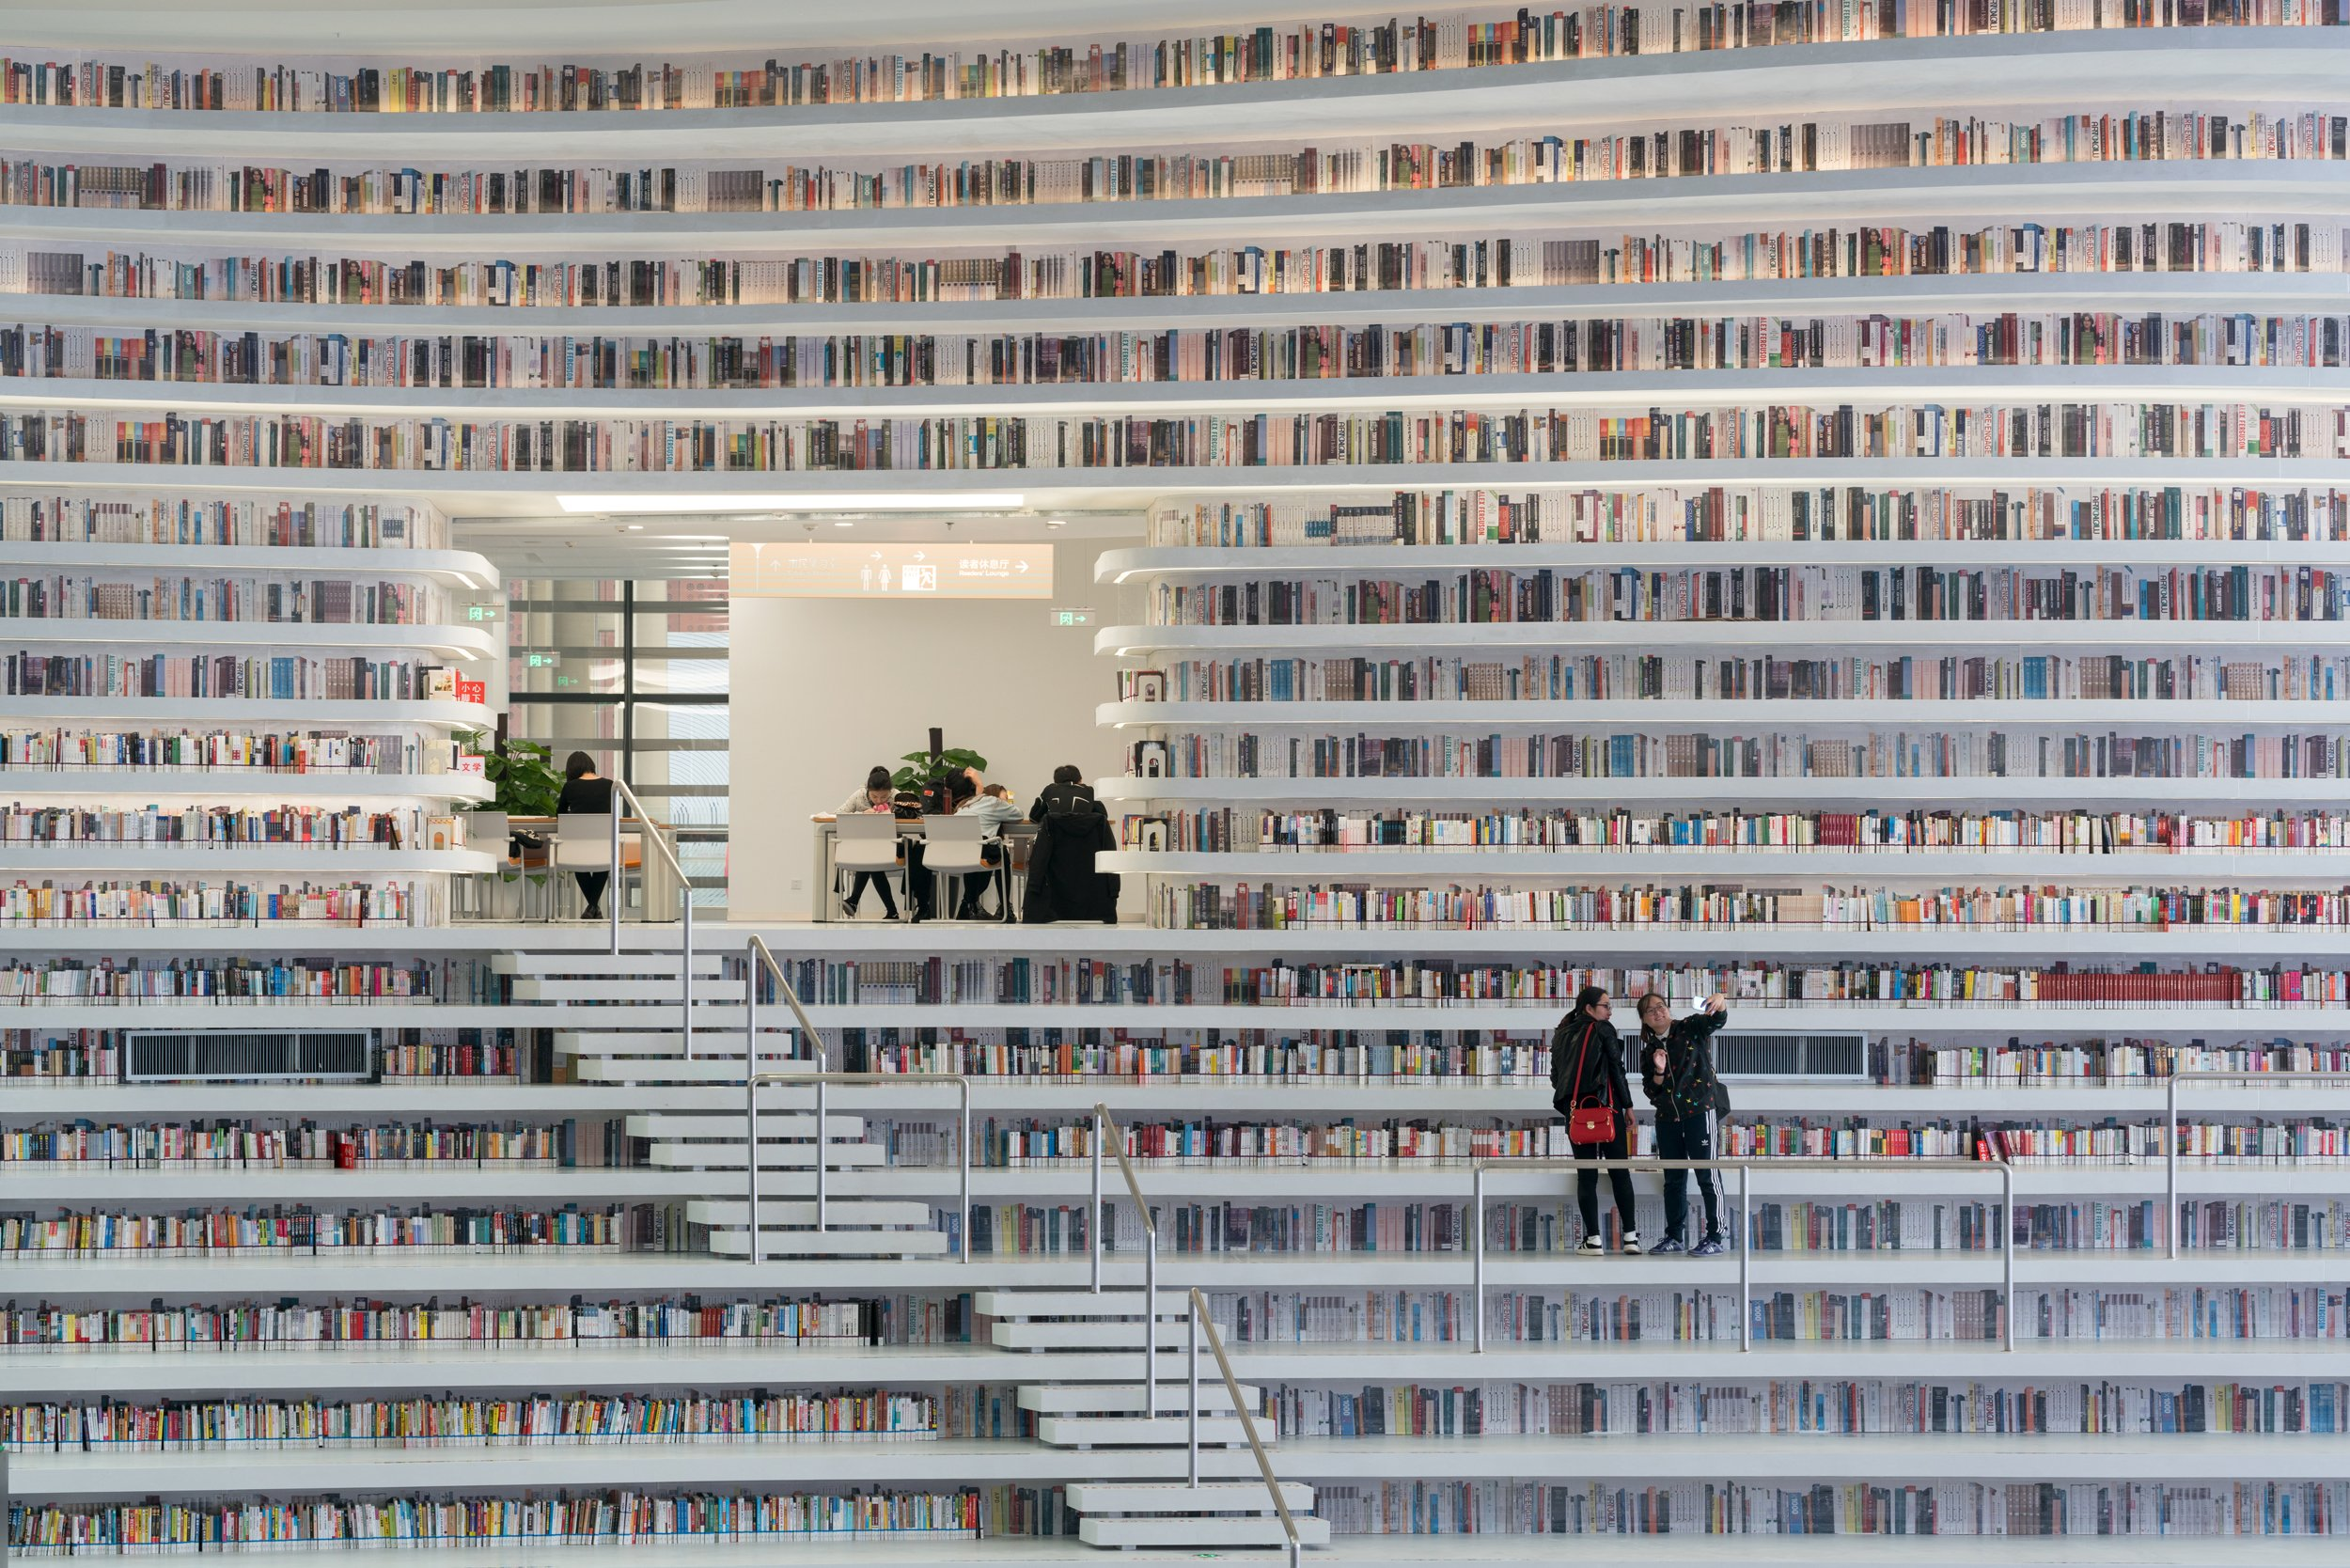 China has opened the coolest library with 1.2 million books